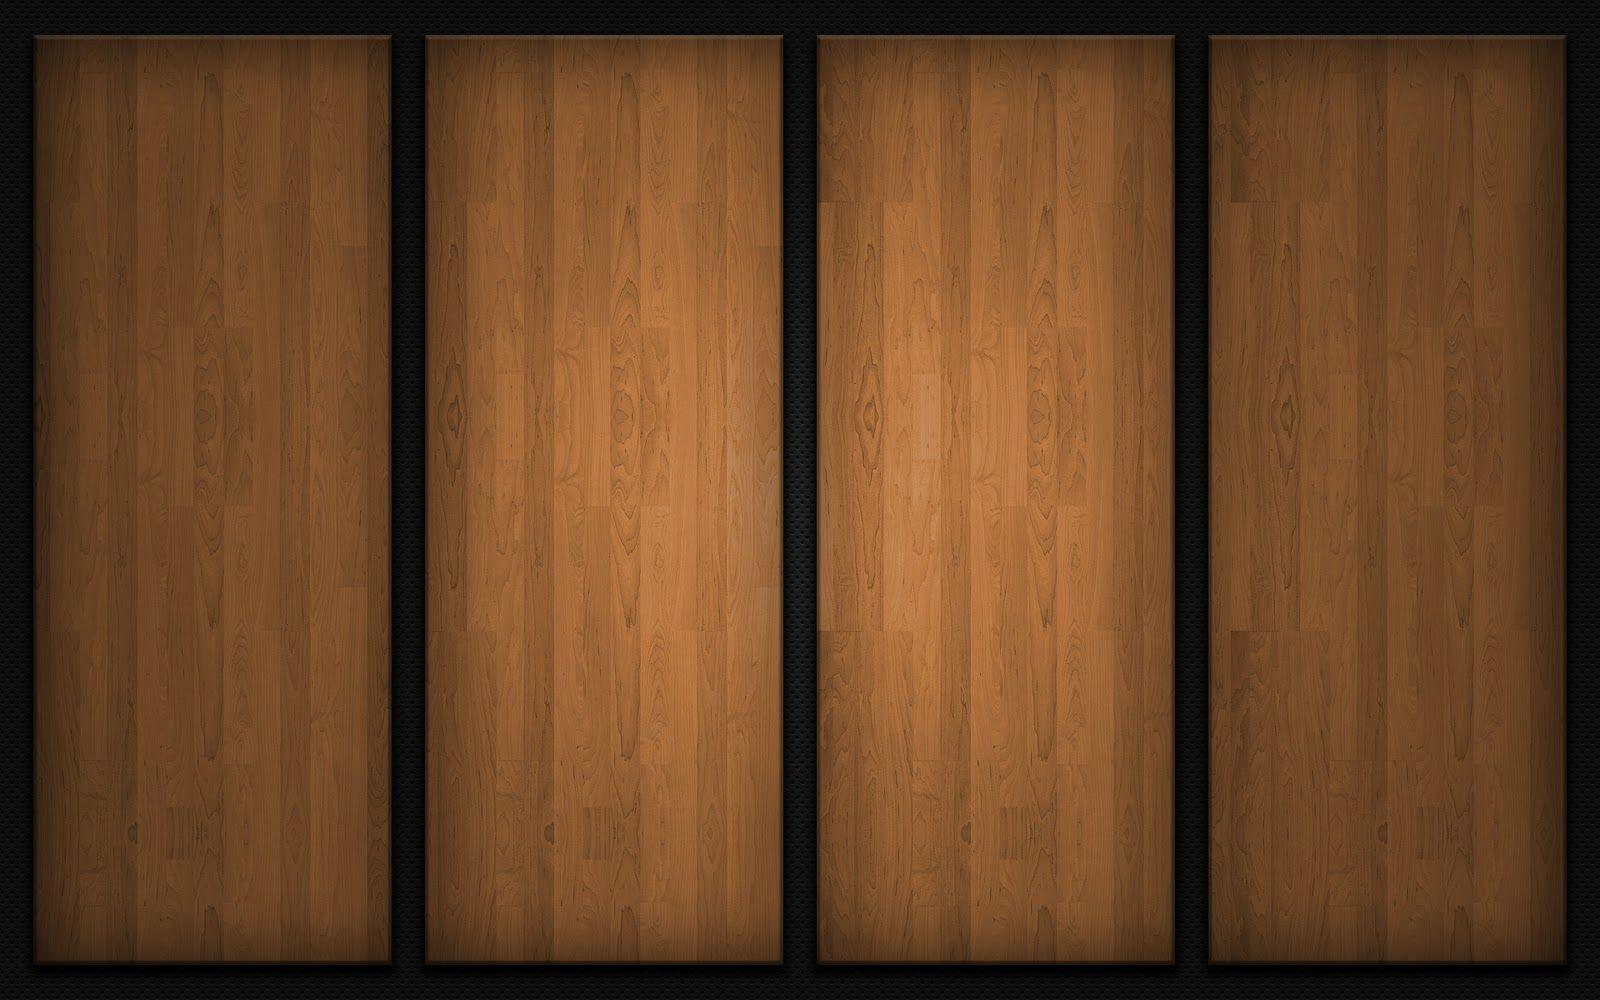 hd-wallpaper-wood- Dhoomwallpaper.com | Latest HD Wallpaper Collection